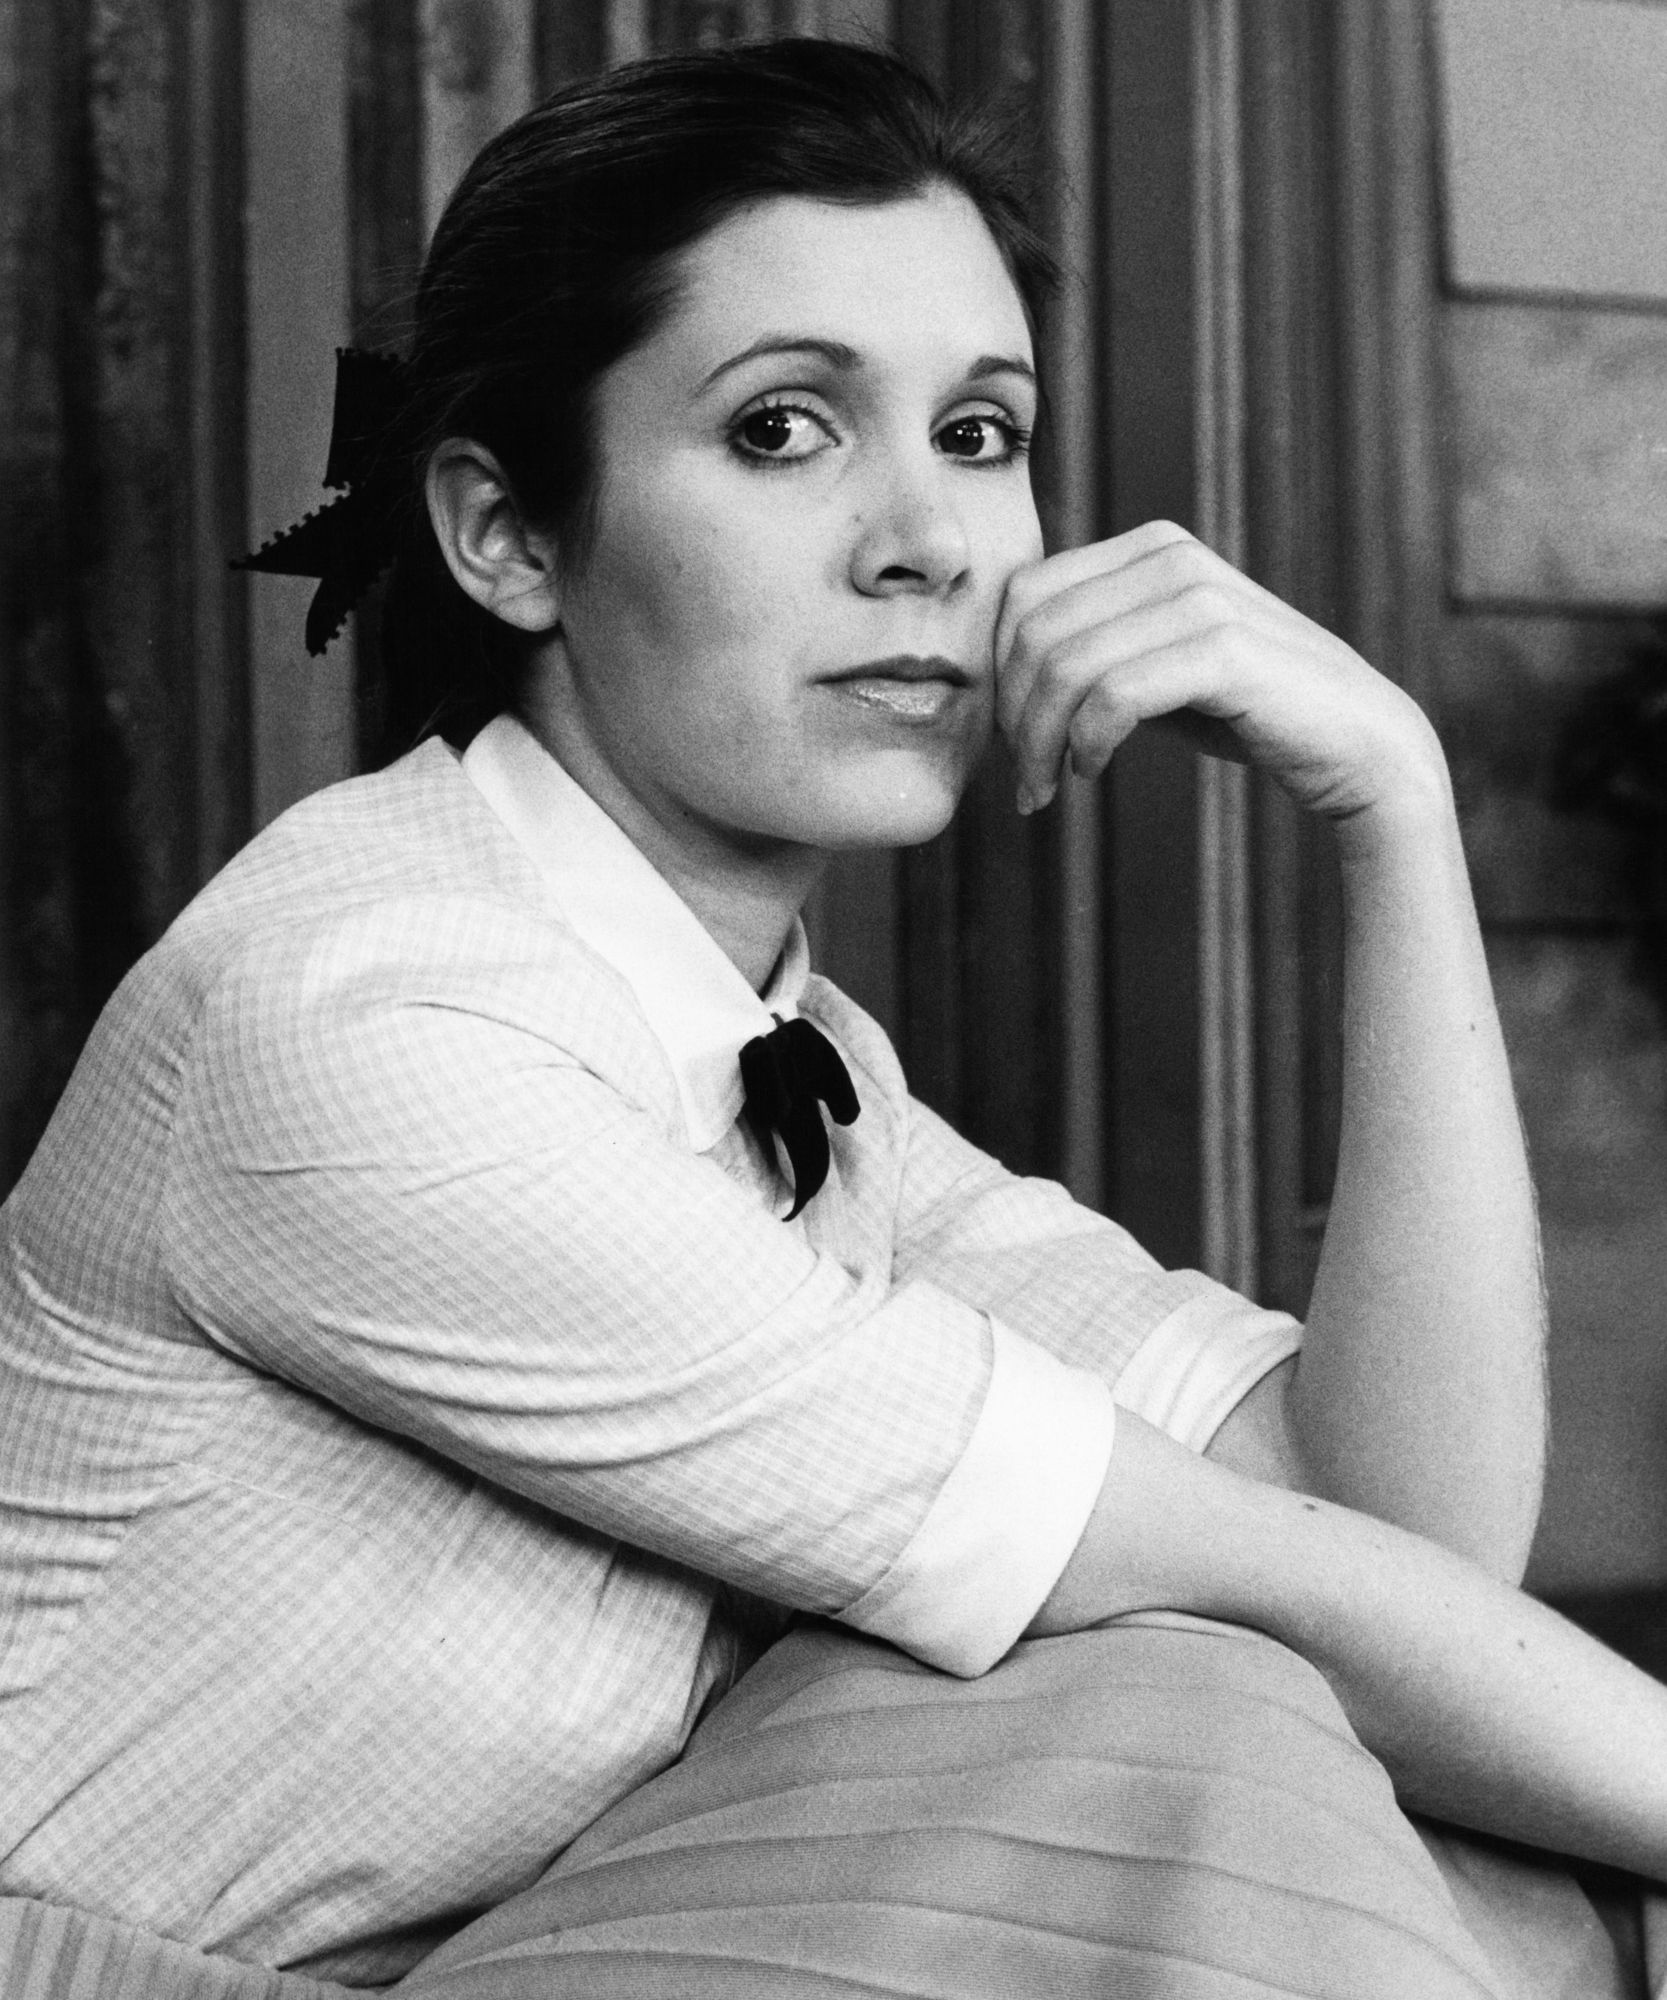 The highly celebrated Carrie Fisher—most known for her role as Princess Leia in the Star Wars film series—has passed away. She will be missed.